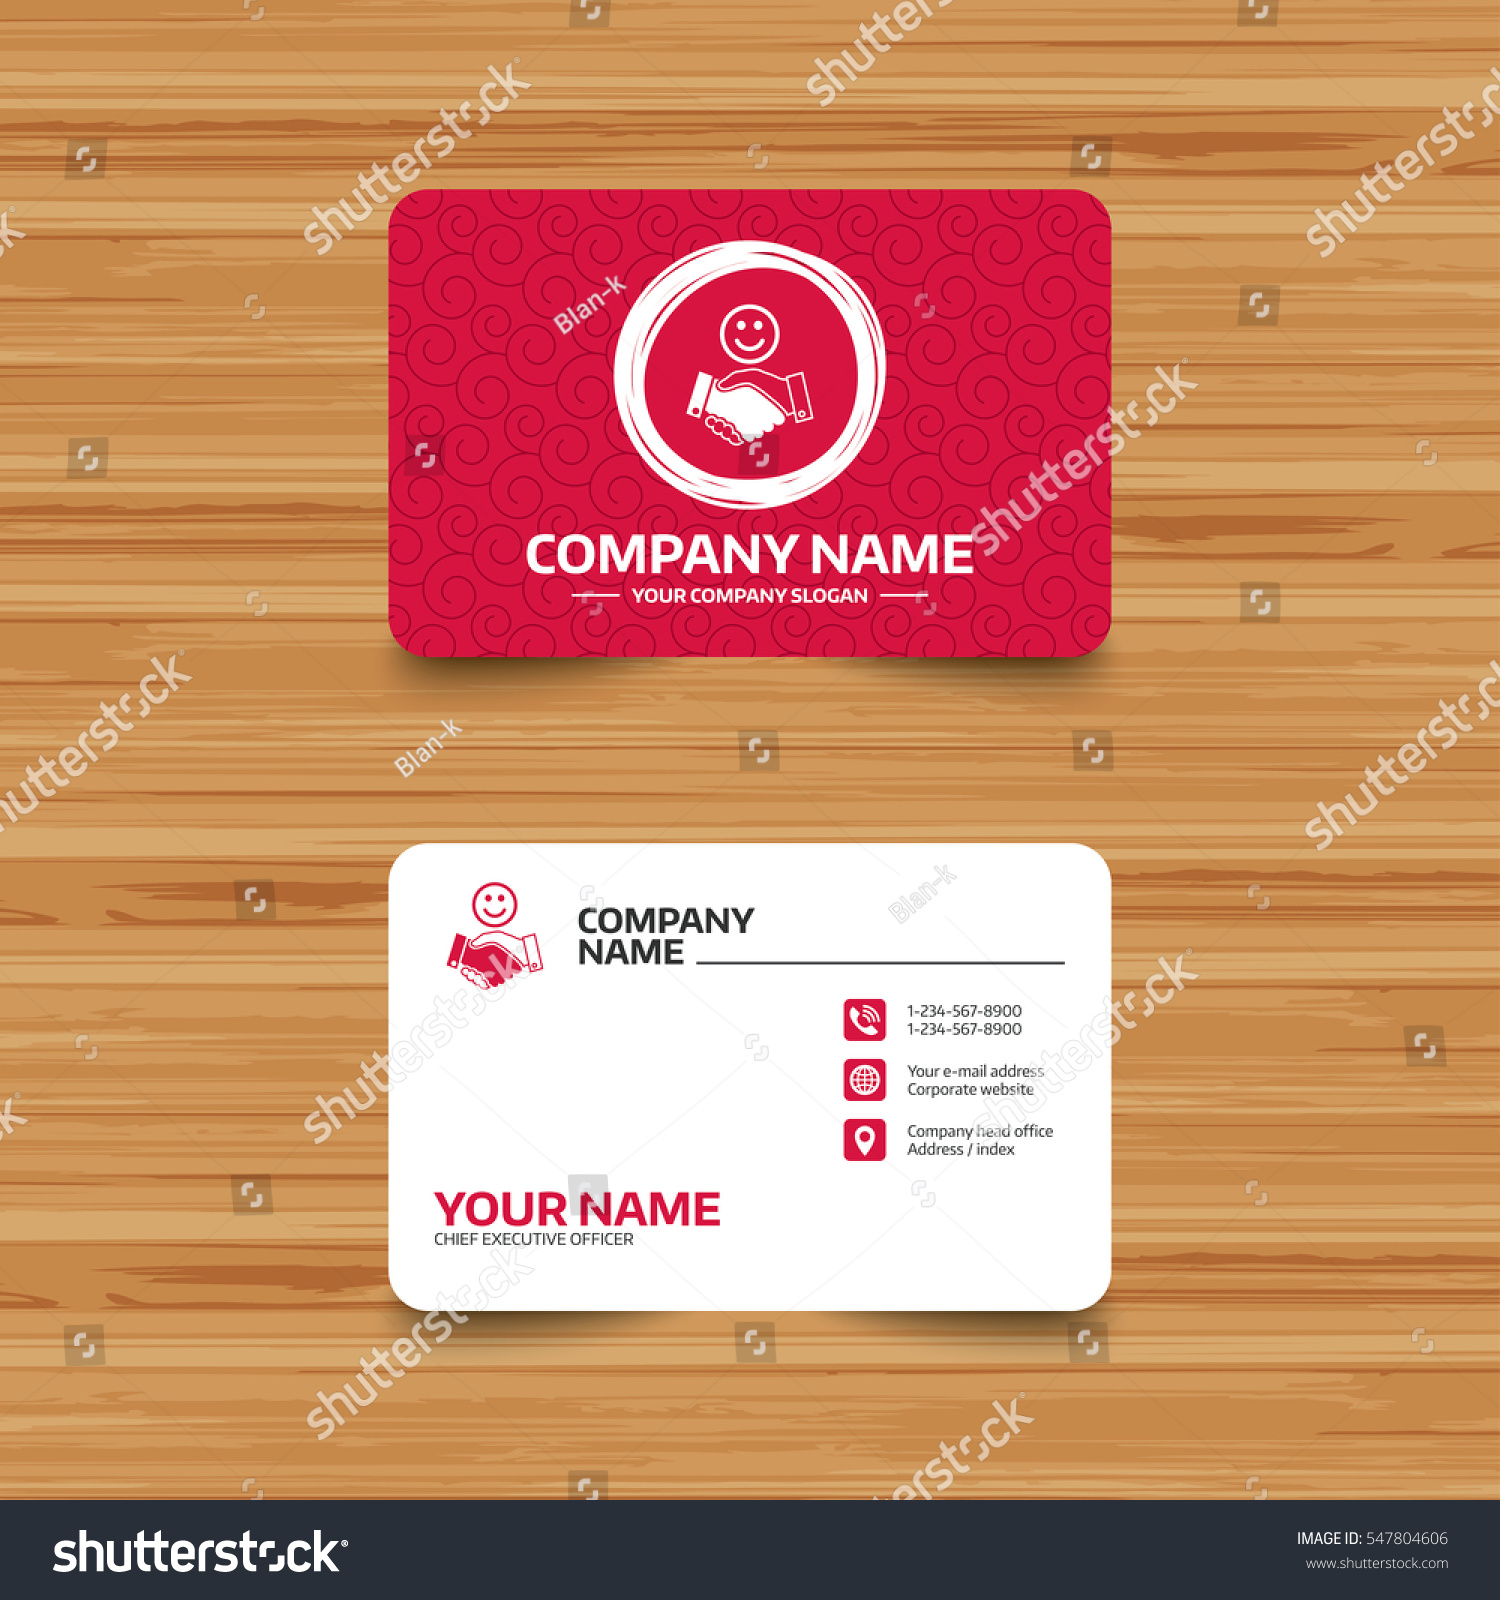 Best Successful Business Cards Gallery - Business Card Ideas ...